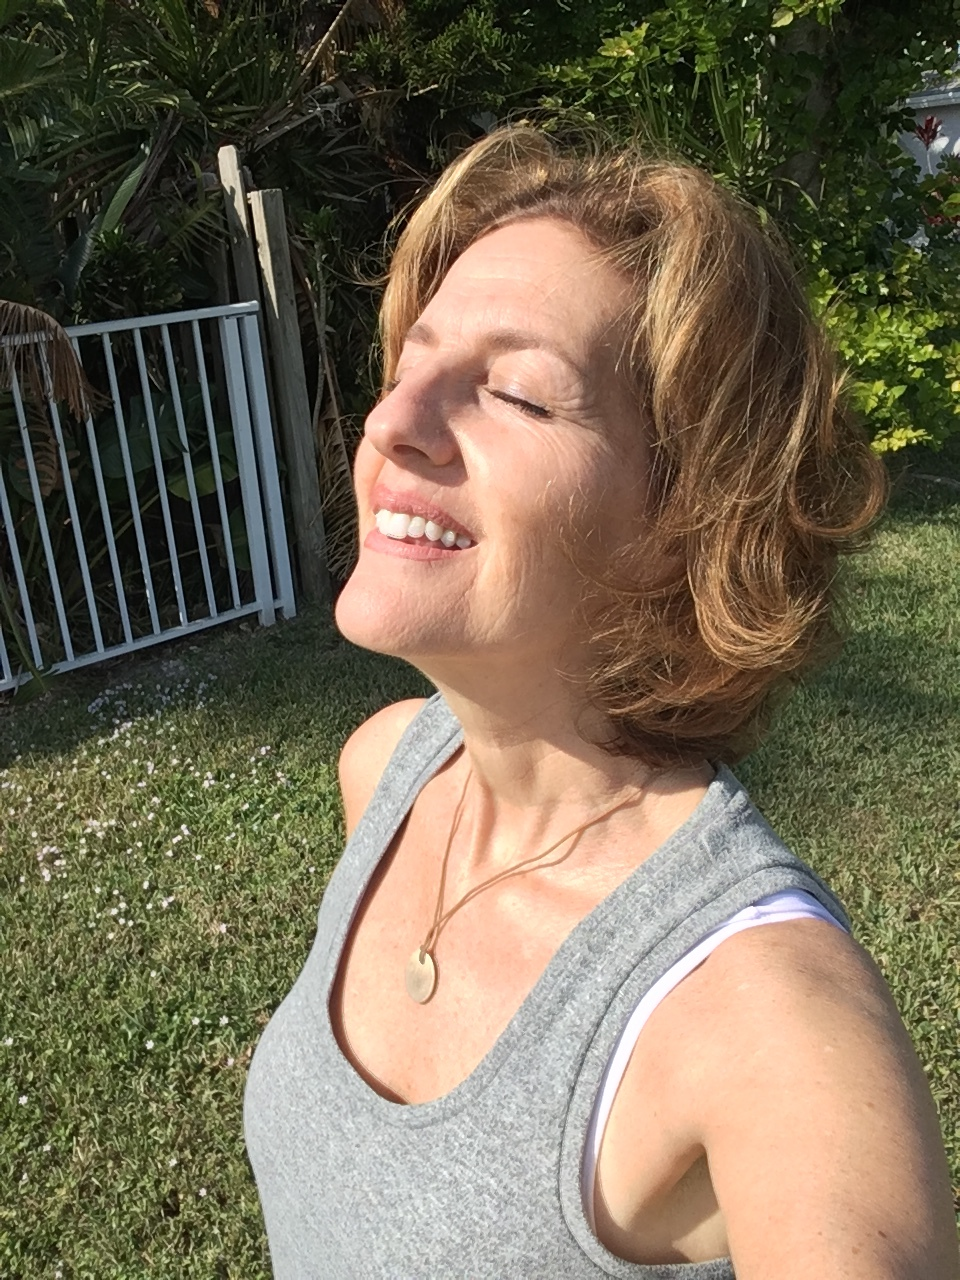 - The more I practice Face Yoga, the better my life seems to get. I am more aware of habitual ways in which I use my face muscles so that I can stop the bad habits. I have completely gotten rid of TMJ pain, and I find myself smiling more often and speaking more easily!